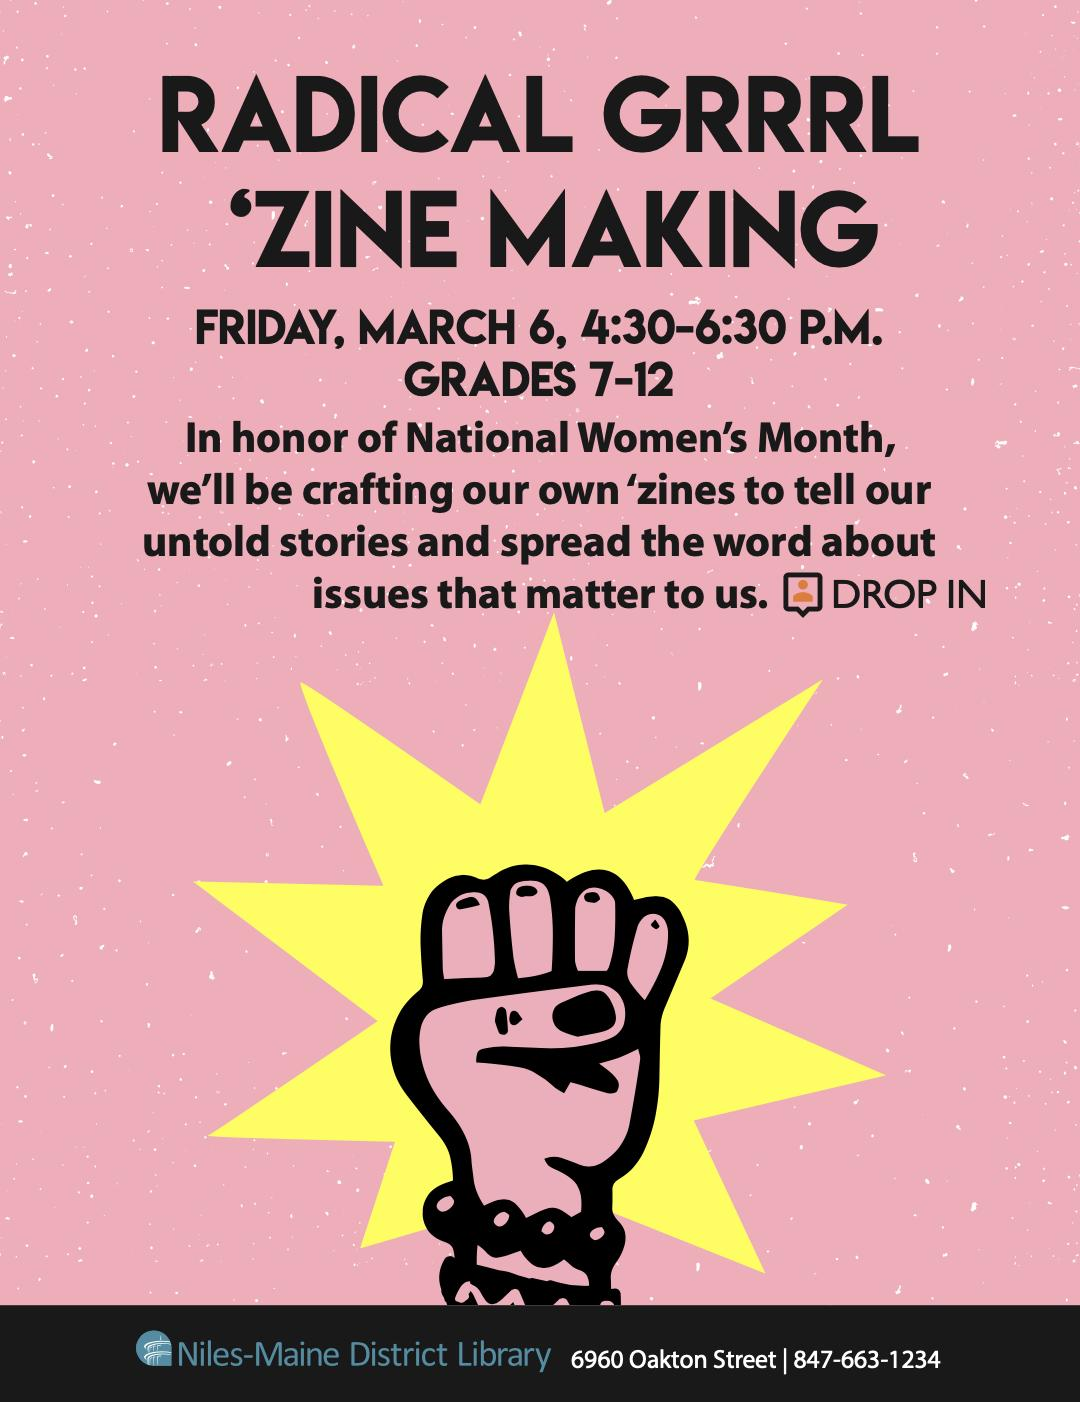 Radical Girl Zine Making at Niles-Maine District Library